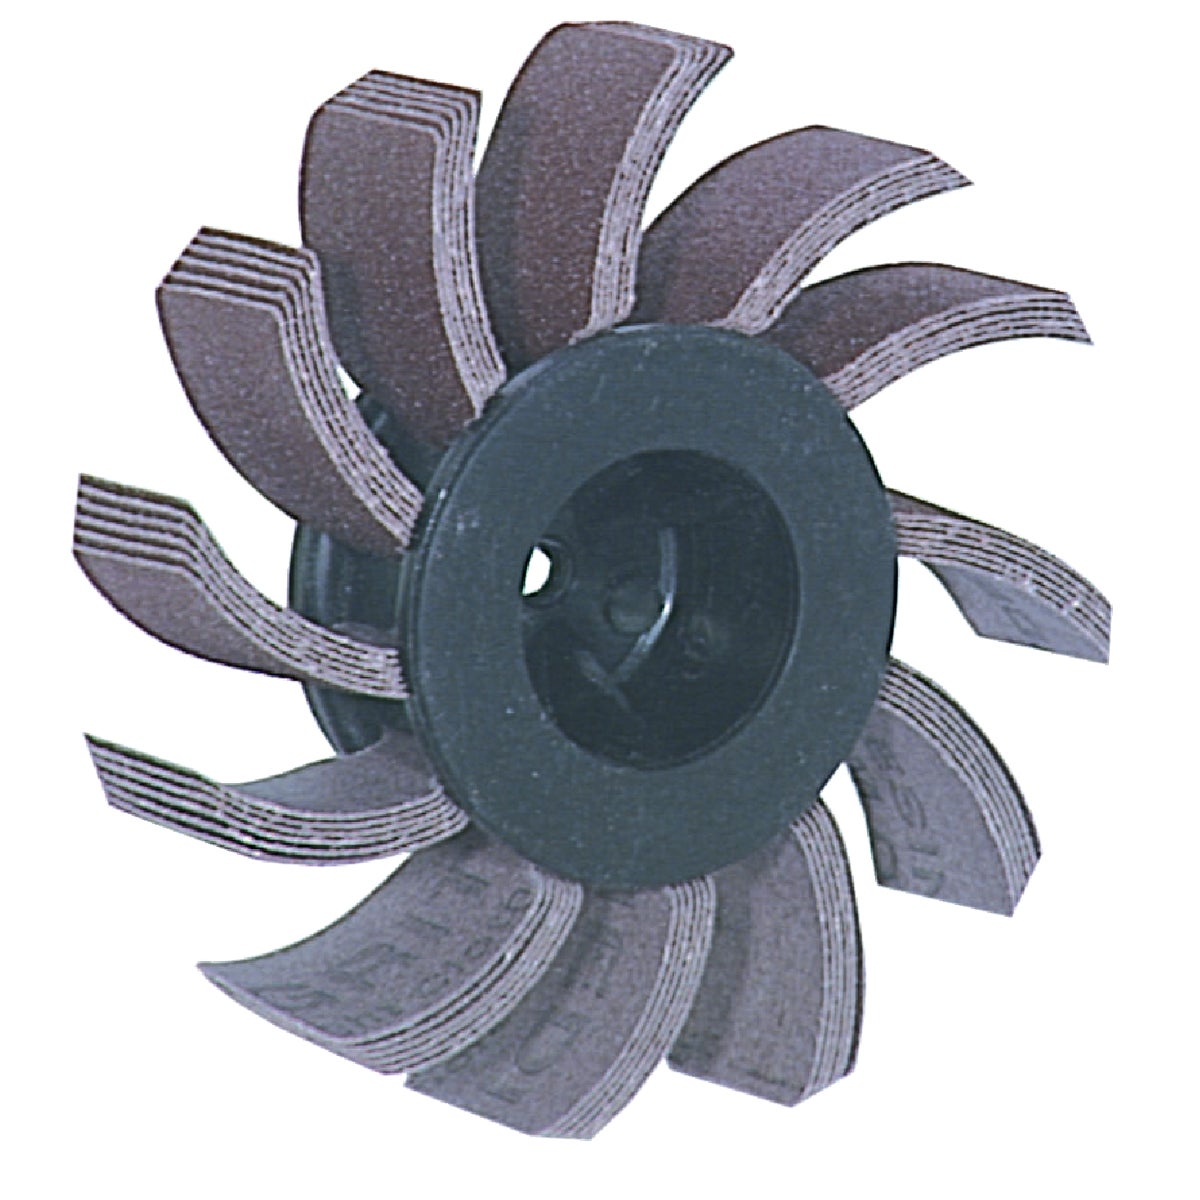 100G FLXBL SANDING WHEEL - 328078 by Ali Industries Inc